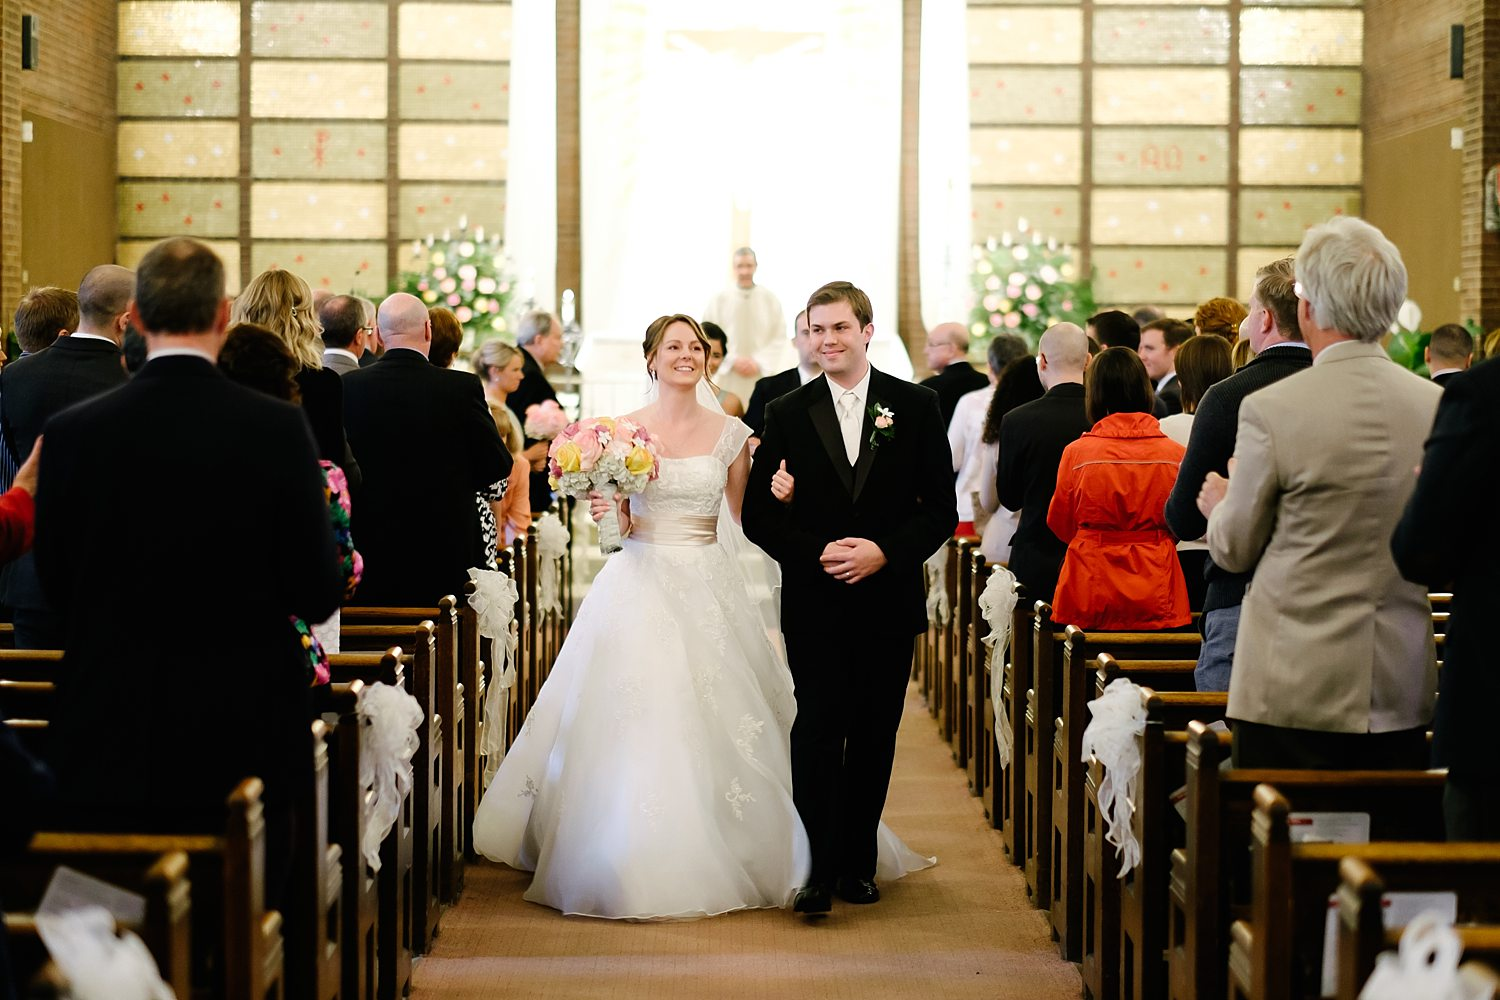 Circuit Center Pittsburgh Wedding Ceremony - Bride and Groom Exit Church